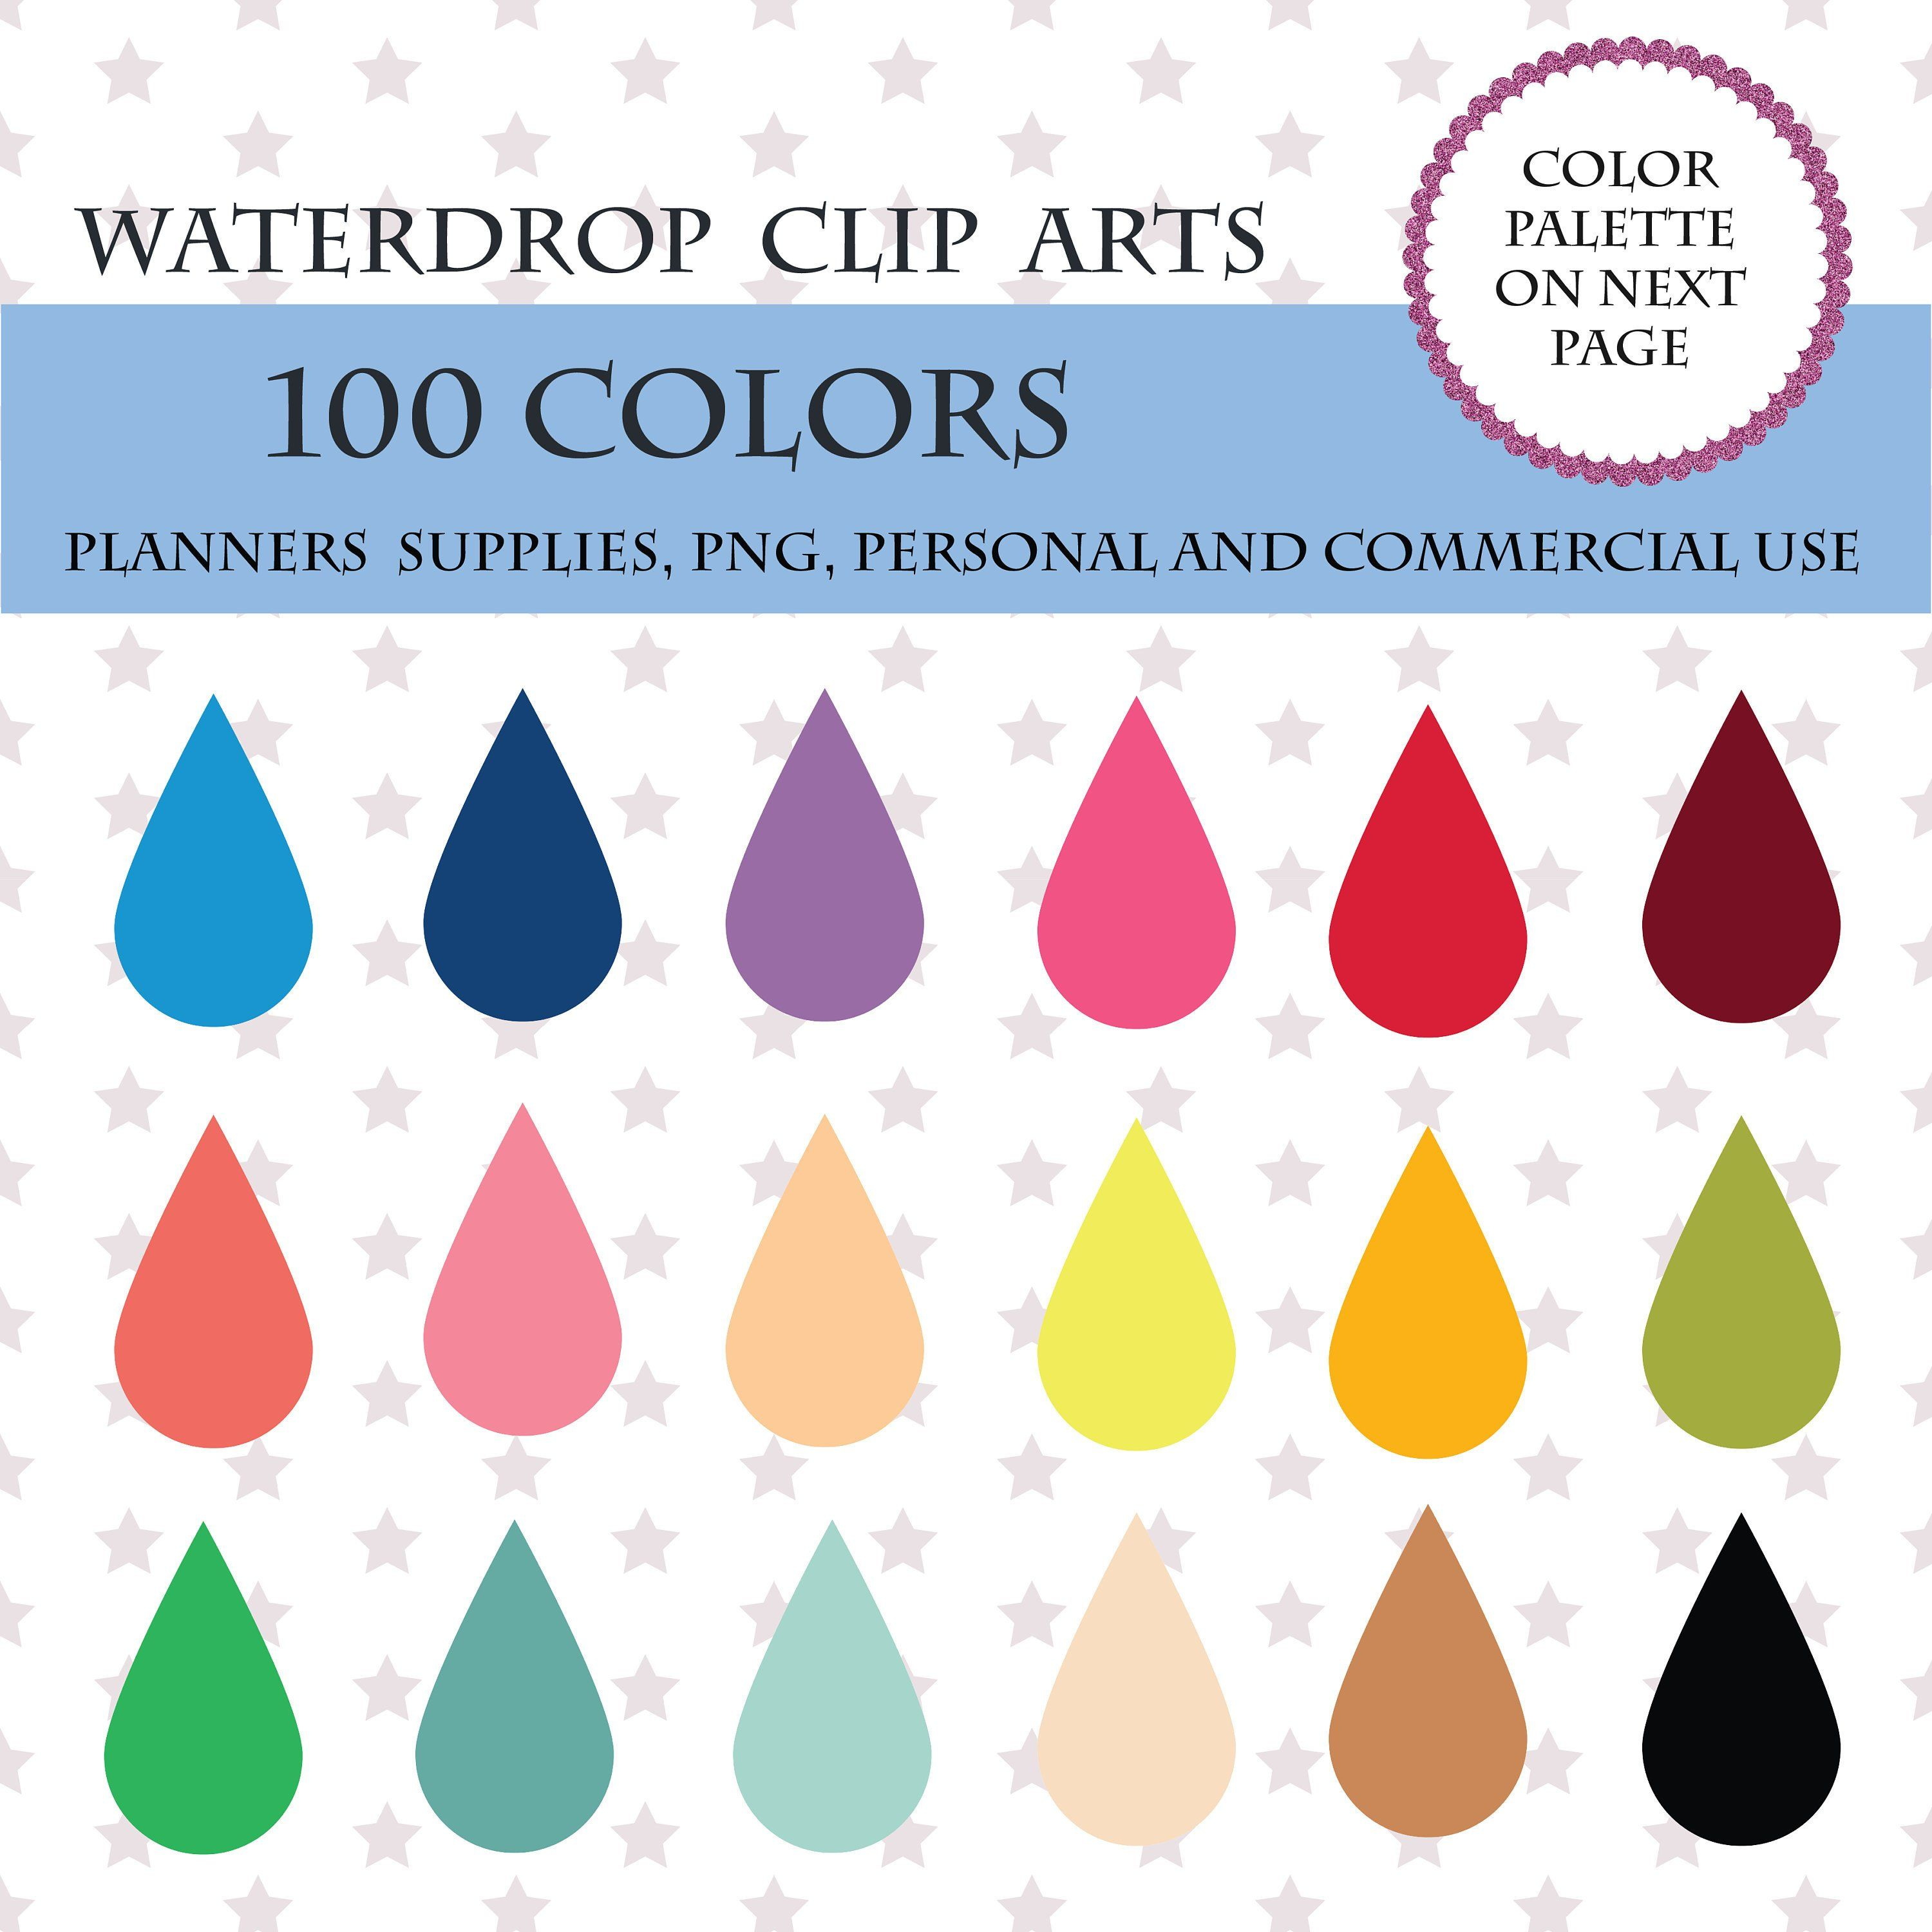 hight resolution of 100 teardrop cliparts raindrop clipart waterdrops clipart droplet icon cute rain drop colorful rainbow water drop clipart pl014